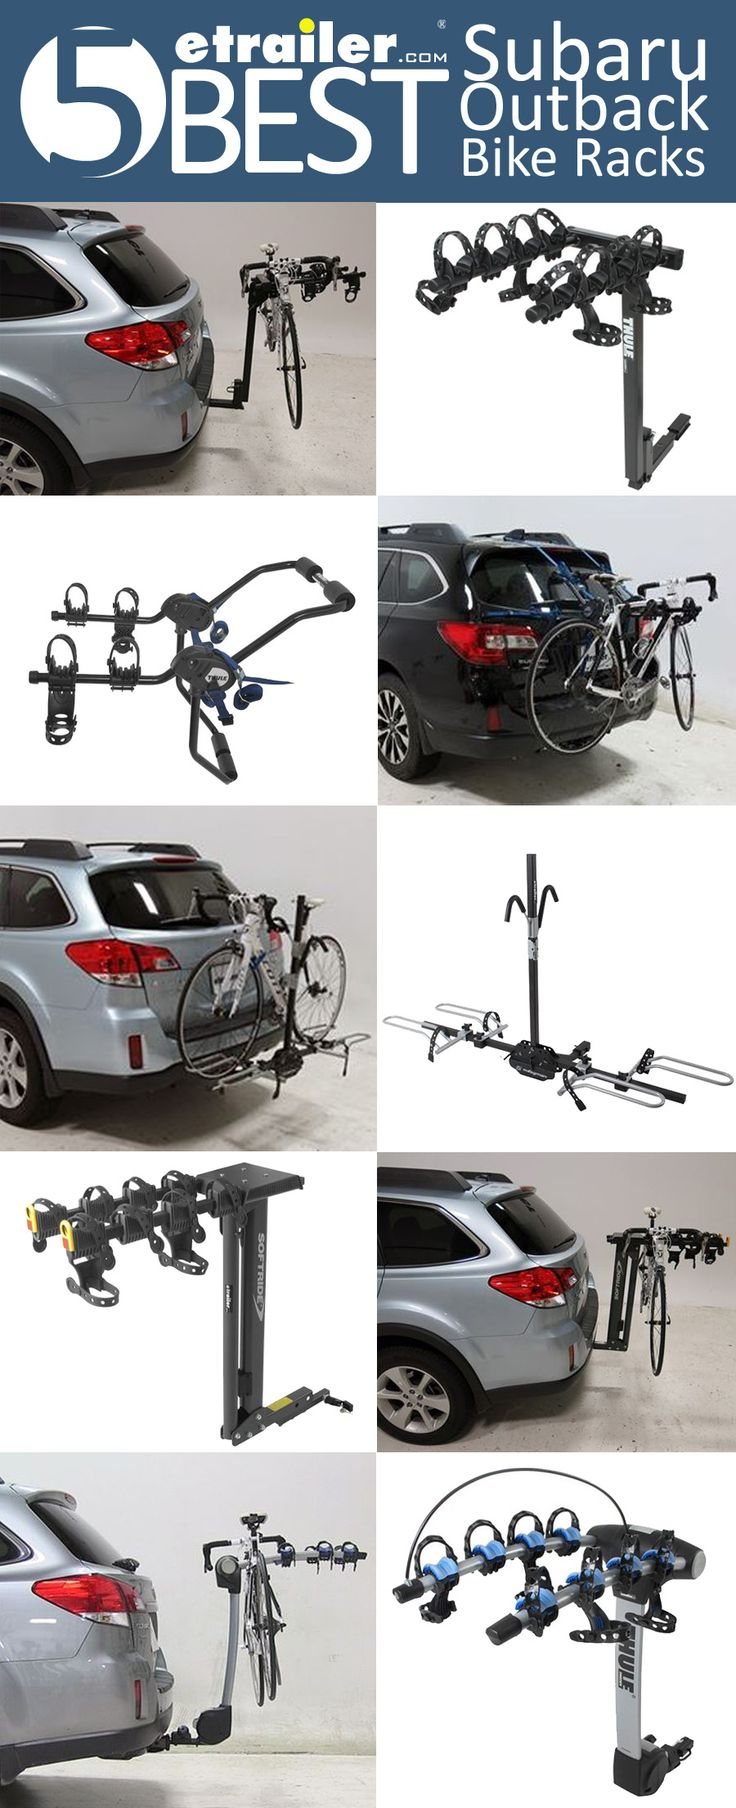 5 BEST Subaru Outback Wagon Bike Racks! Hitch and Hatch Bike Racks for your Outback. Racks for 2 to 4 bikes, swinging, tilting and platform racks.